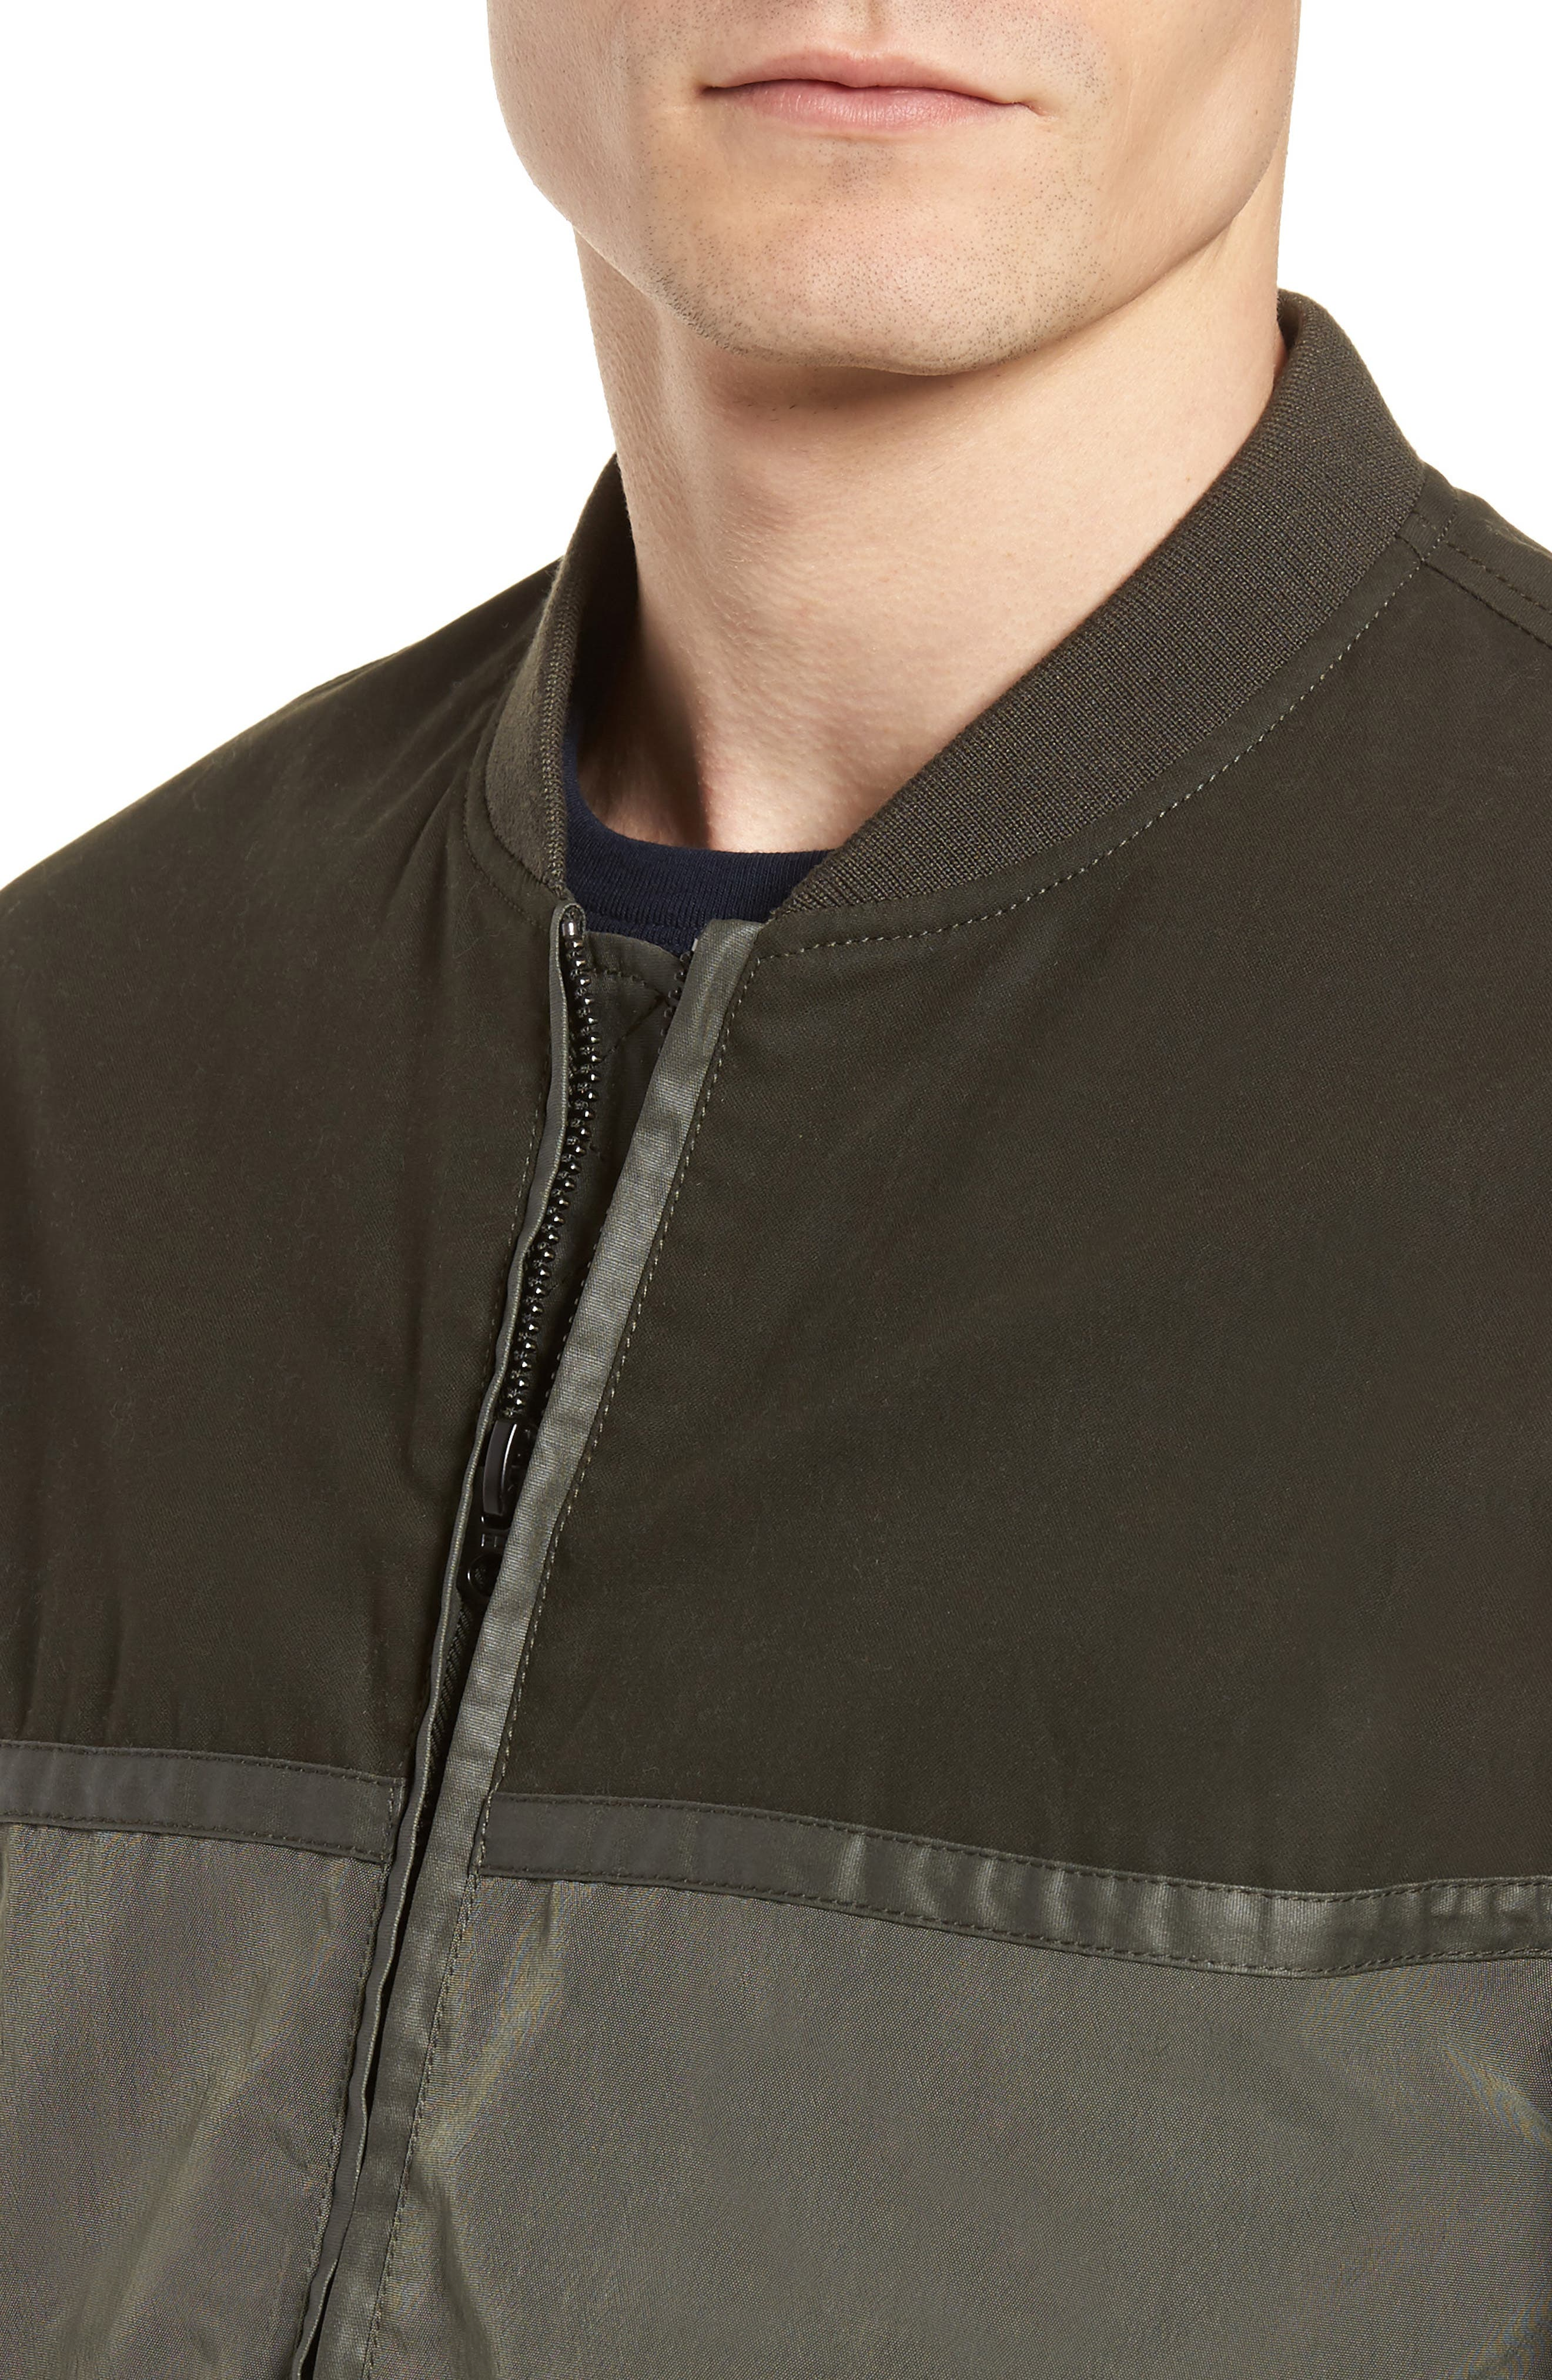 Patchwork Waxed Bomber Jacket,                             Alternate thumbnail 4, color,                             300